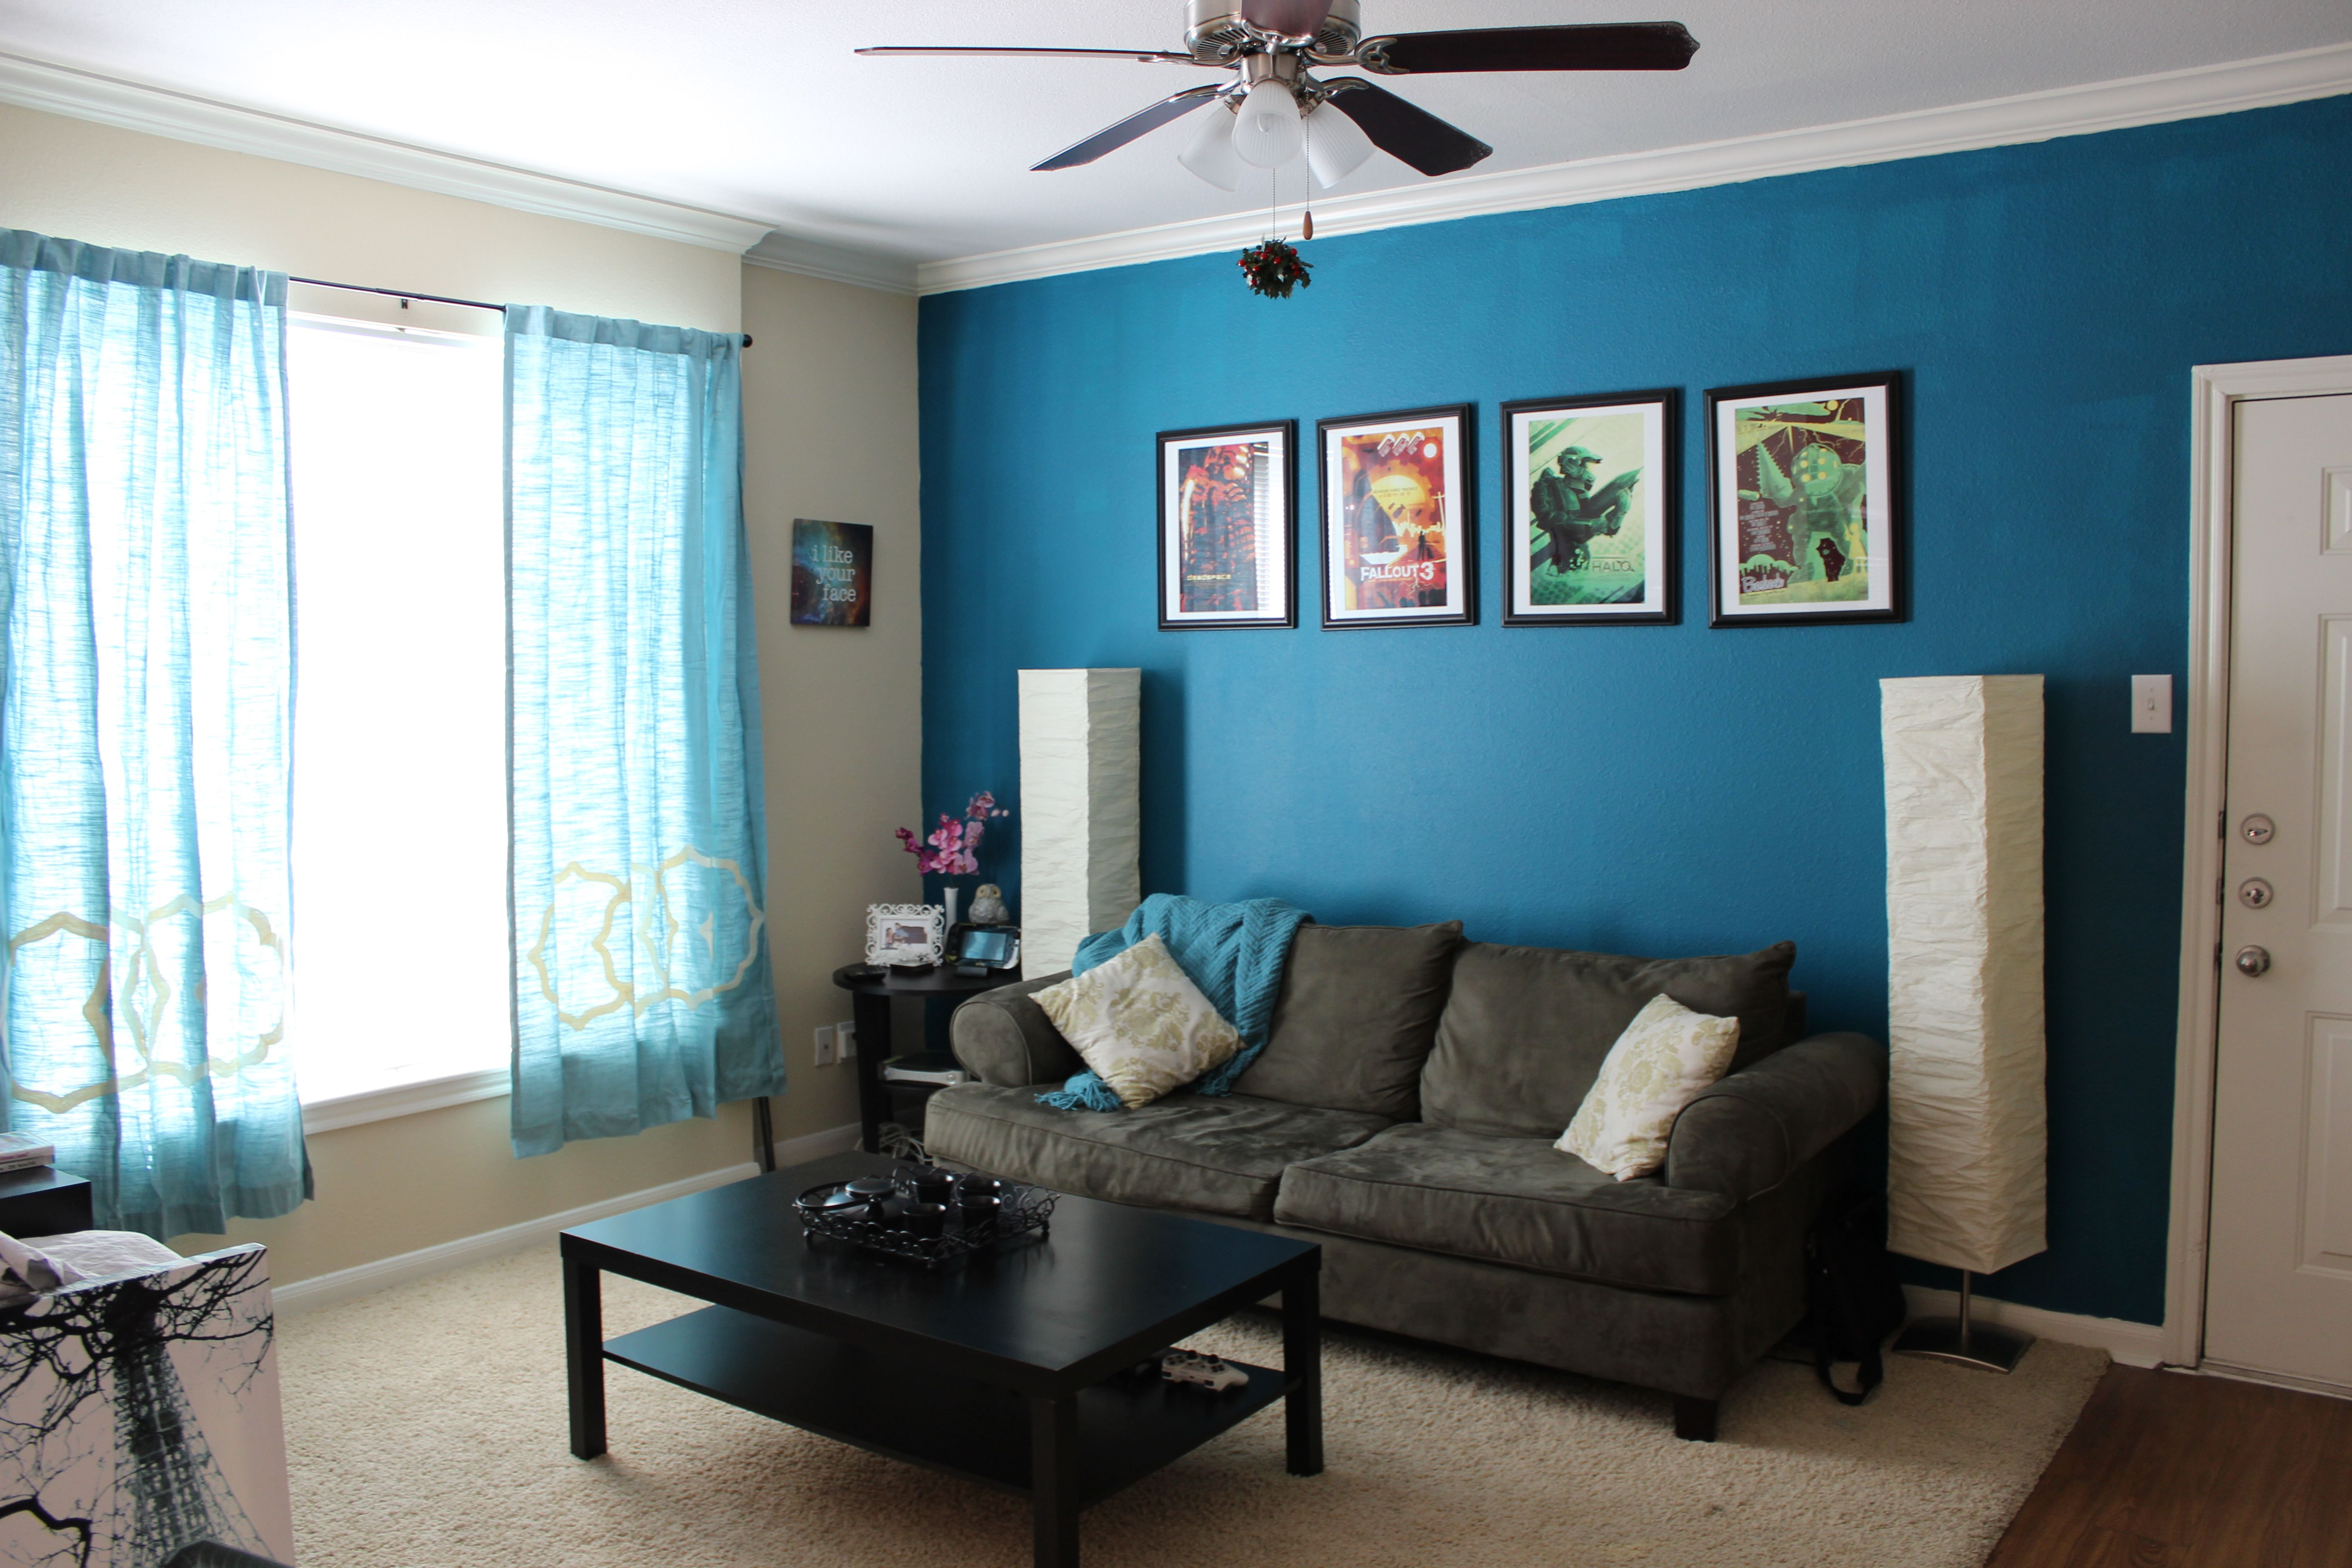 Captivating Living Room Apartments Modern Accent Wall Living Room Design Ideas  Livingroom Inspiration Stunning Ceiling 4 Light With Fan Over Black Solid  Wooden Desk ...